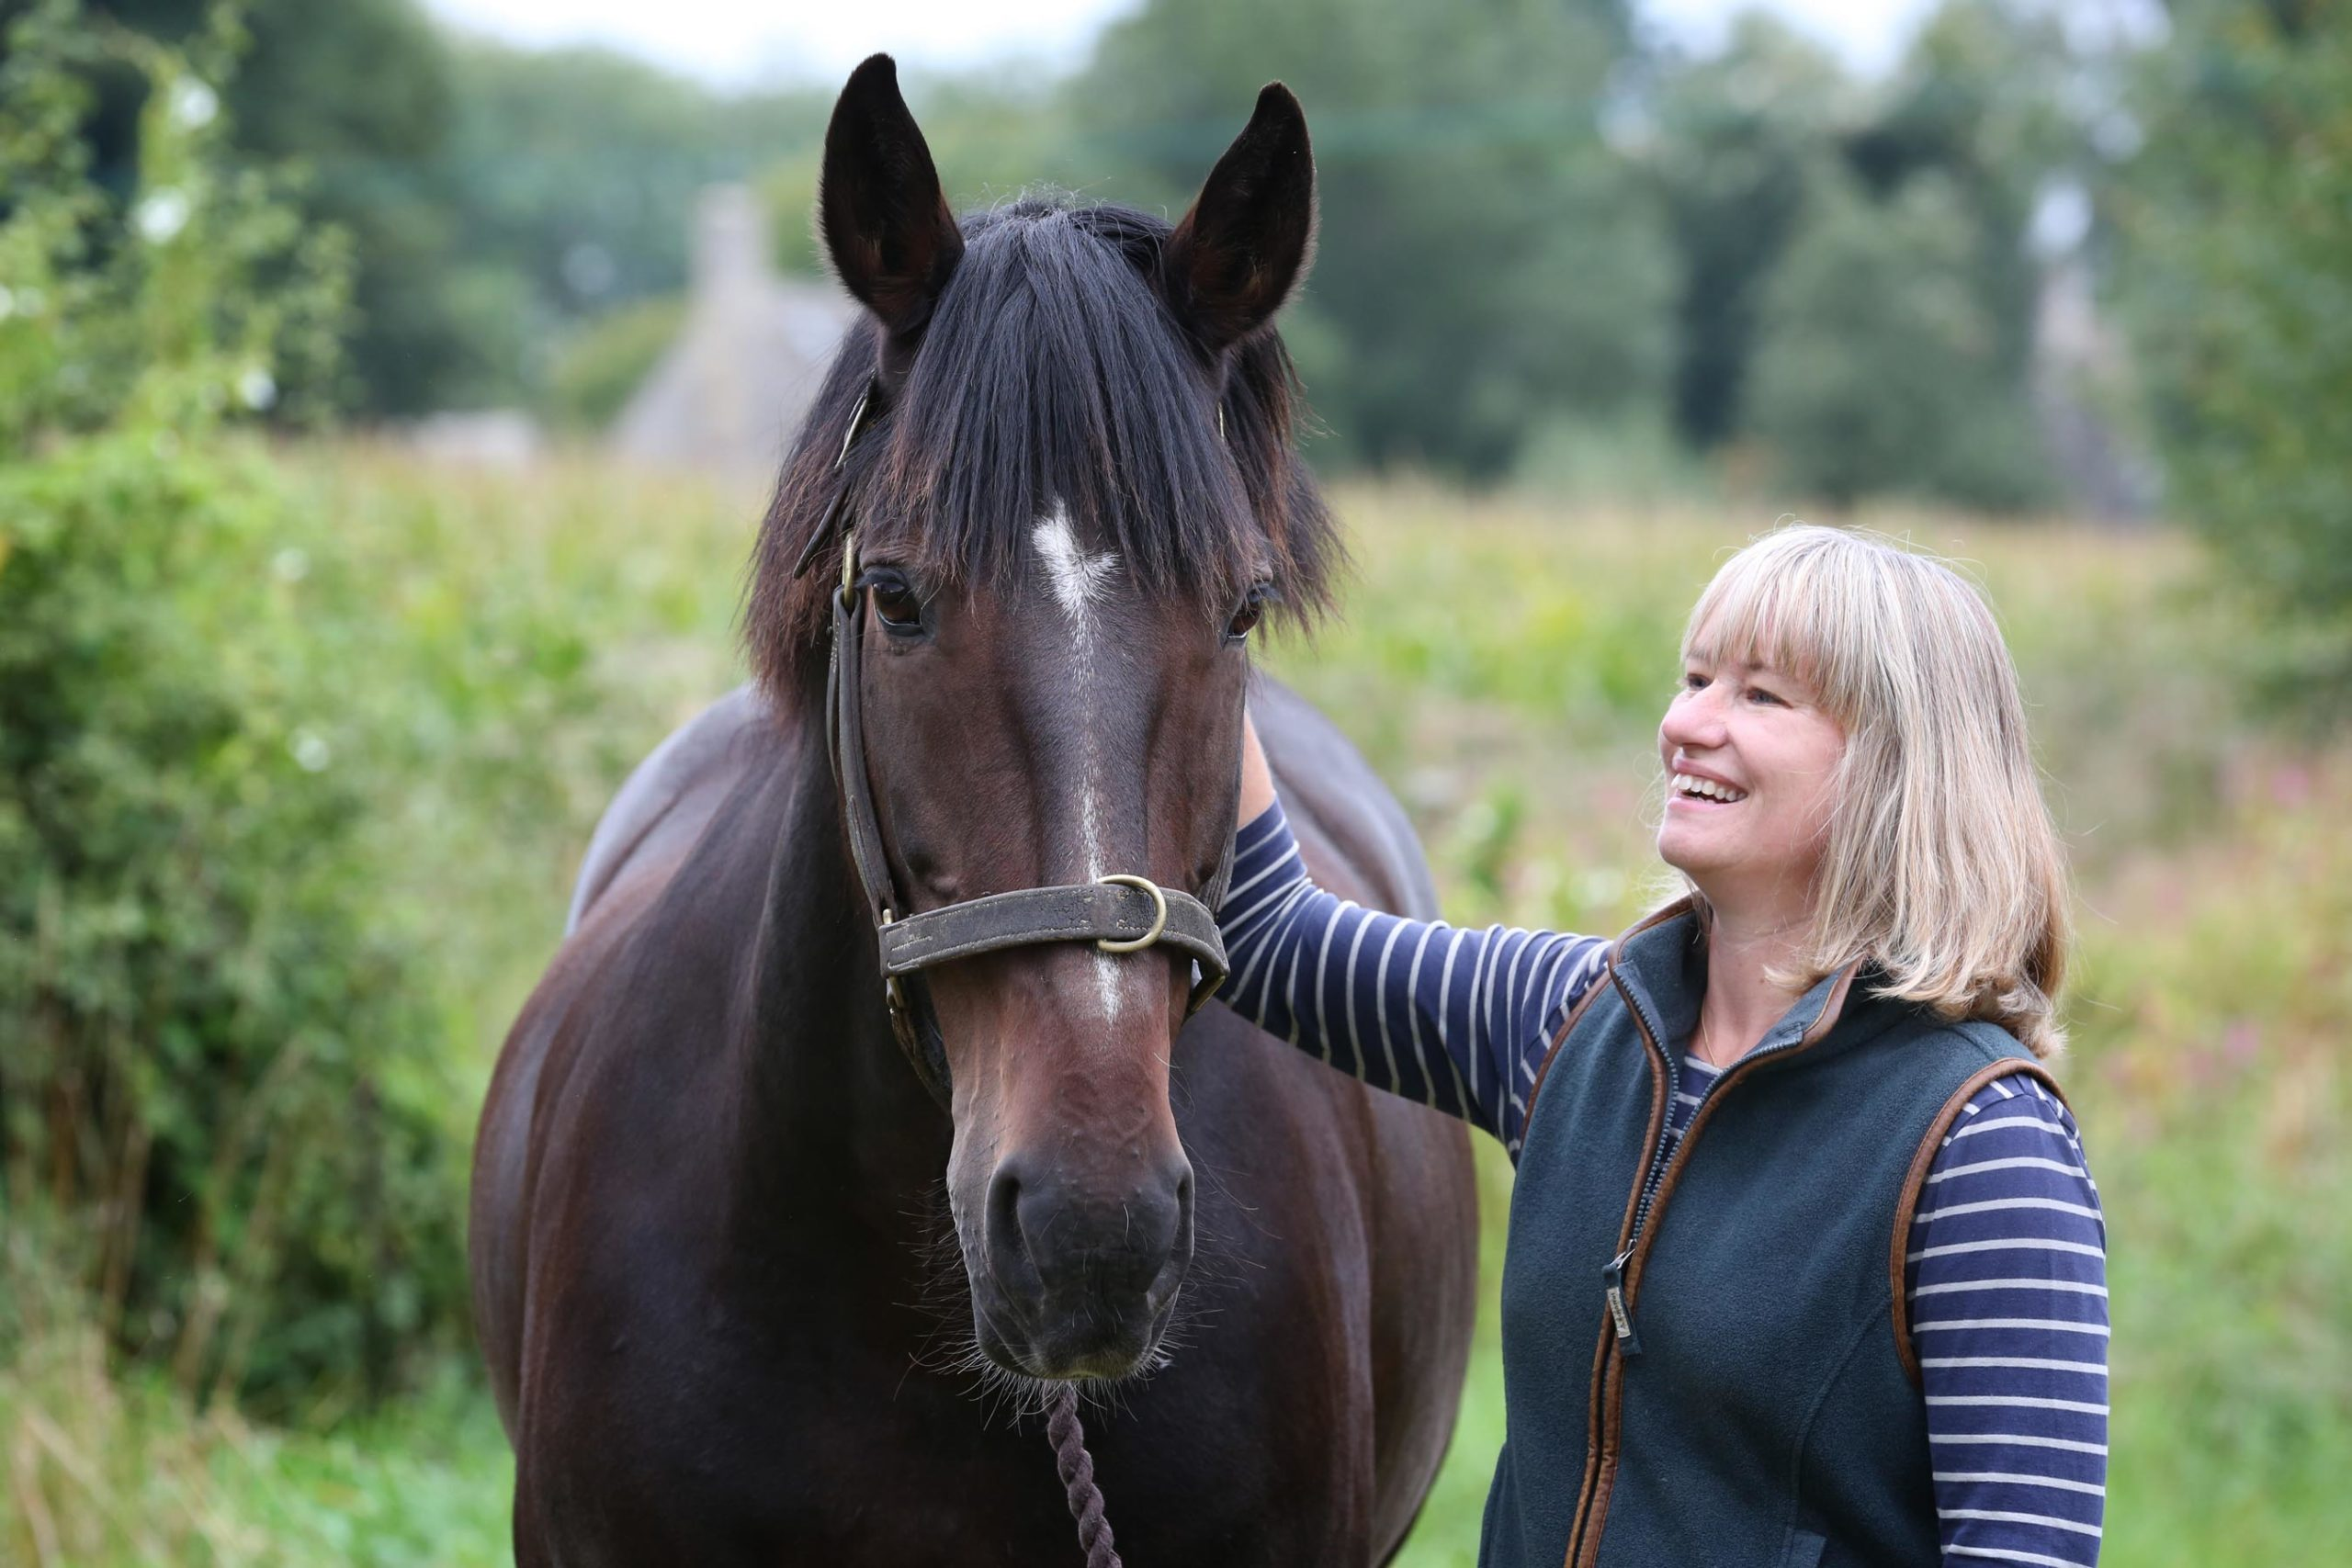 Cotswold Wedding Photographer, Helen Richmond, stood with hand on neck of dark bay horse named Bentley